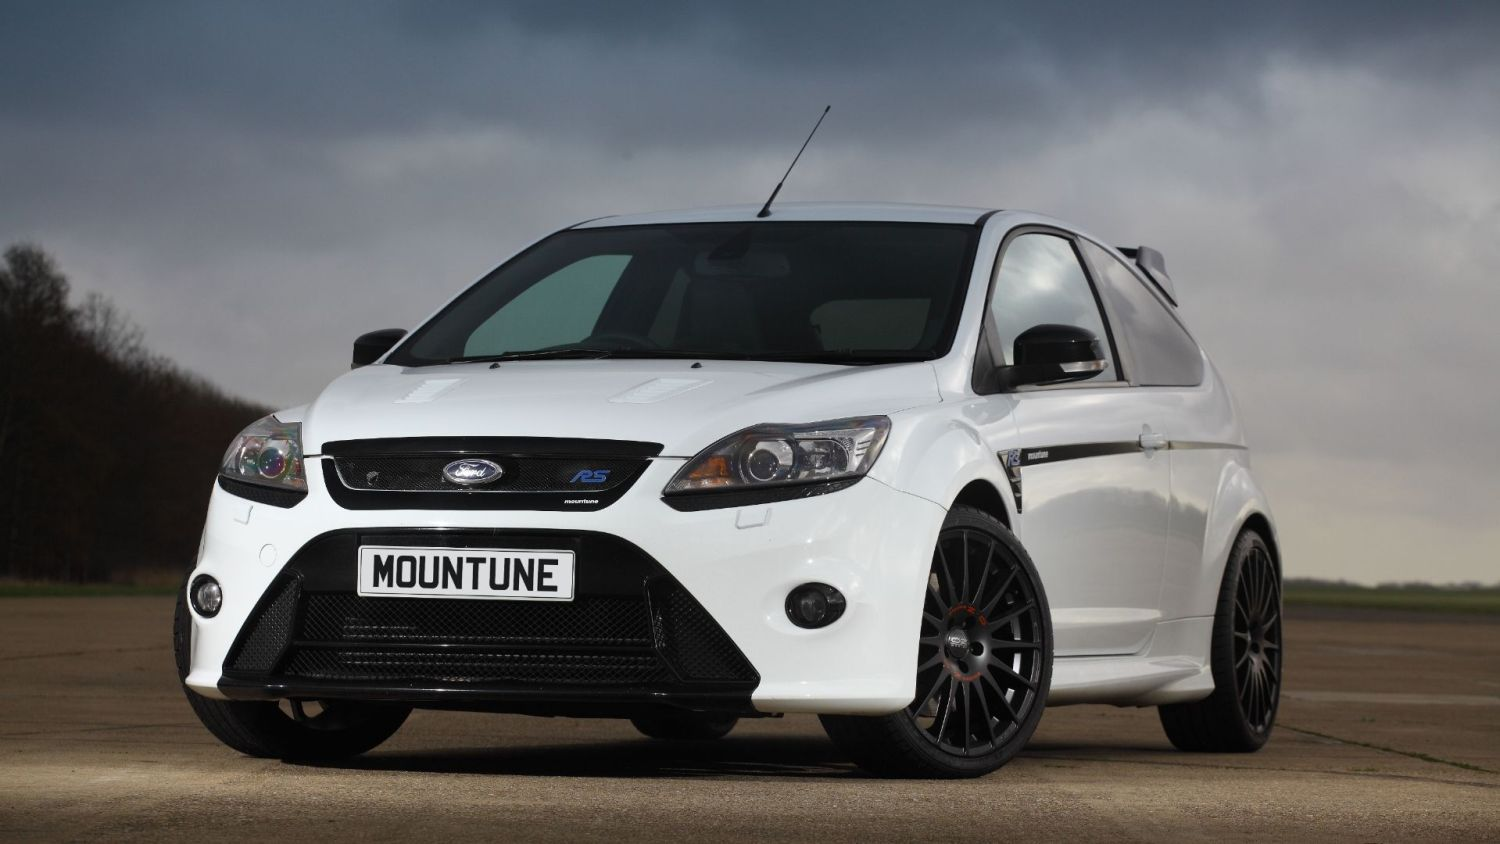 Mountune sequential gearbox